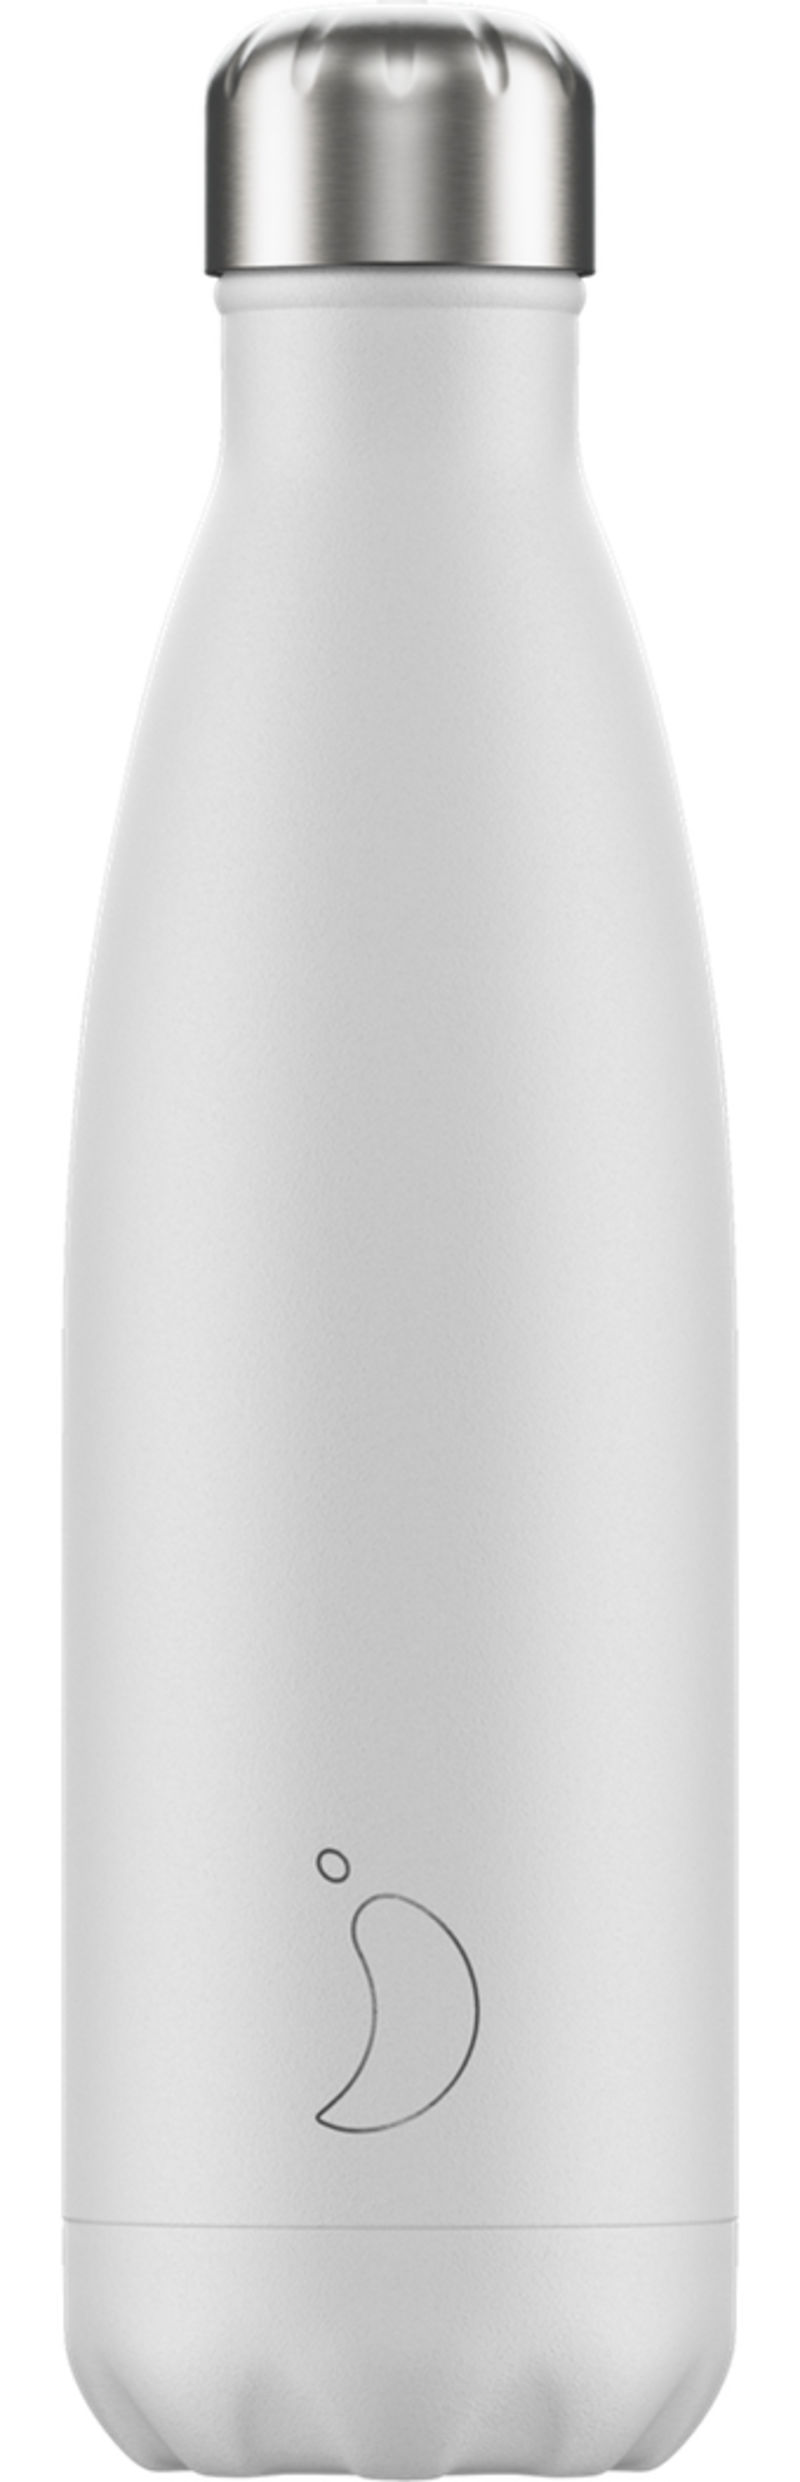 BOTELLA INOX BLANCO MATE 500ML